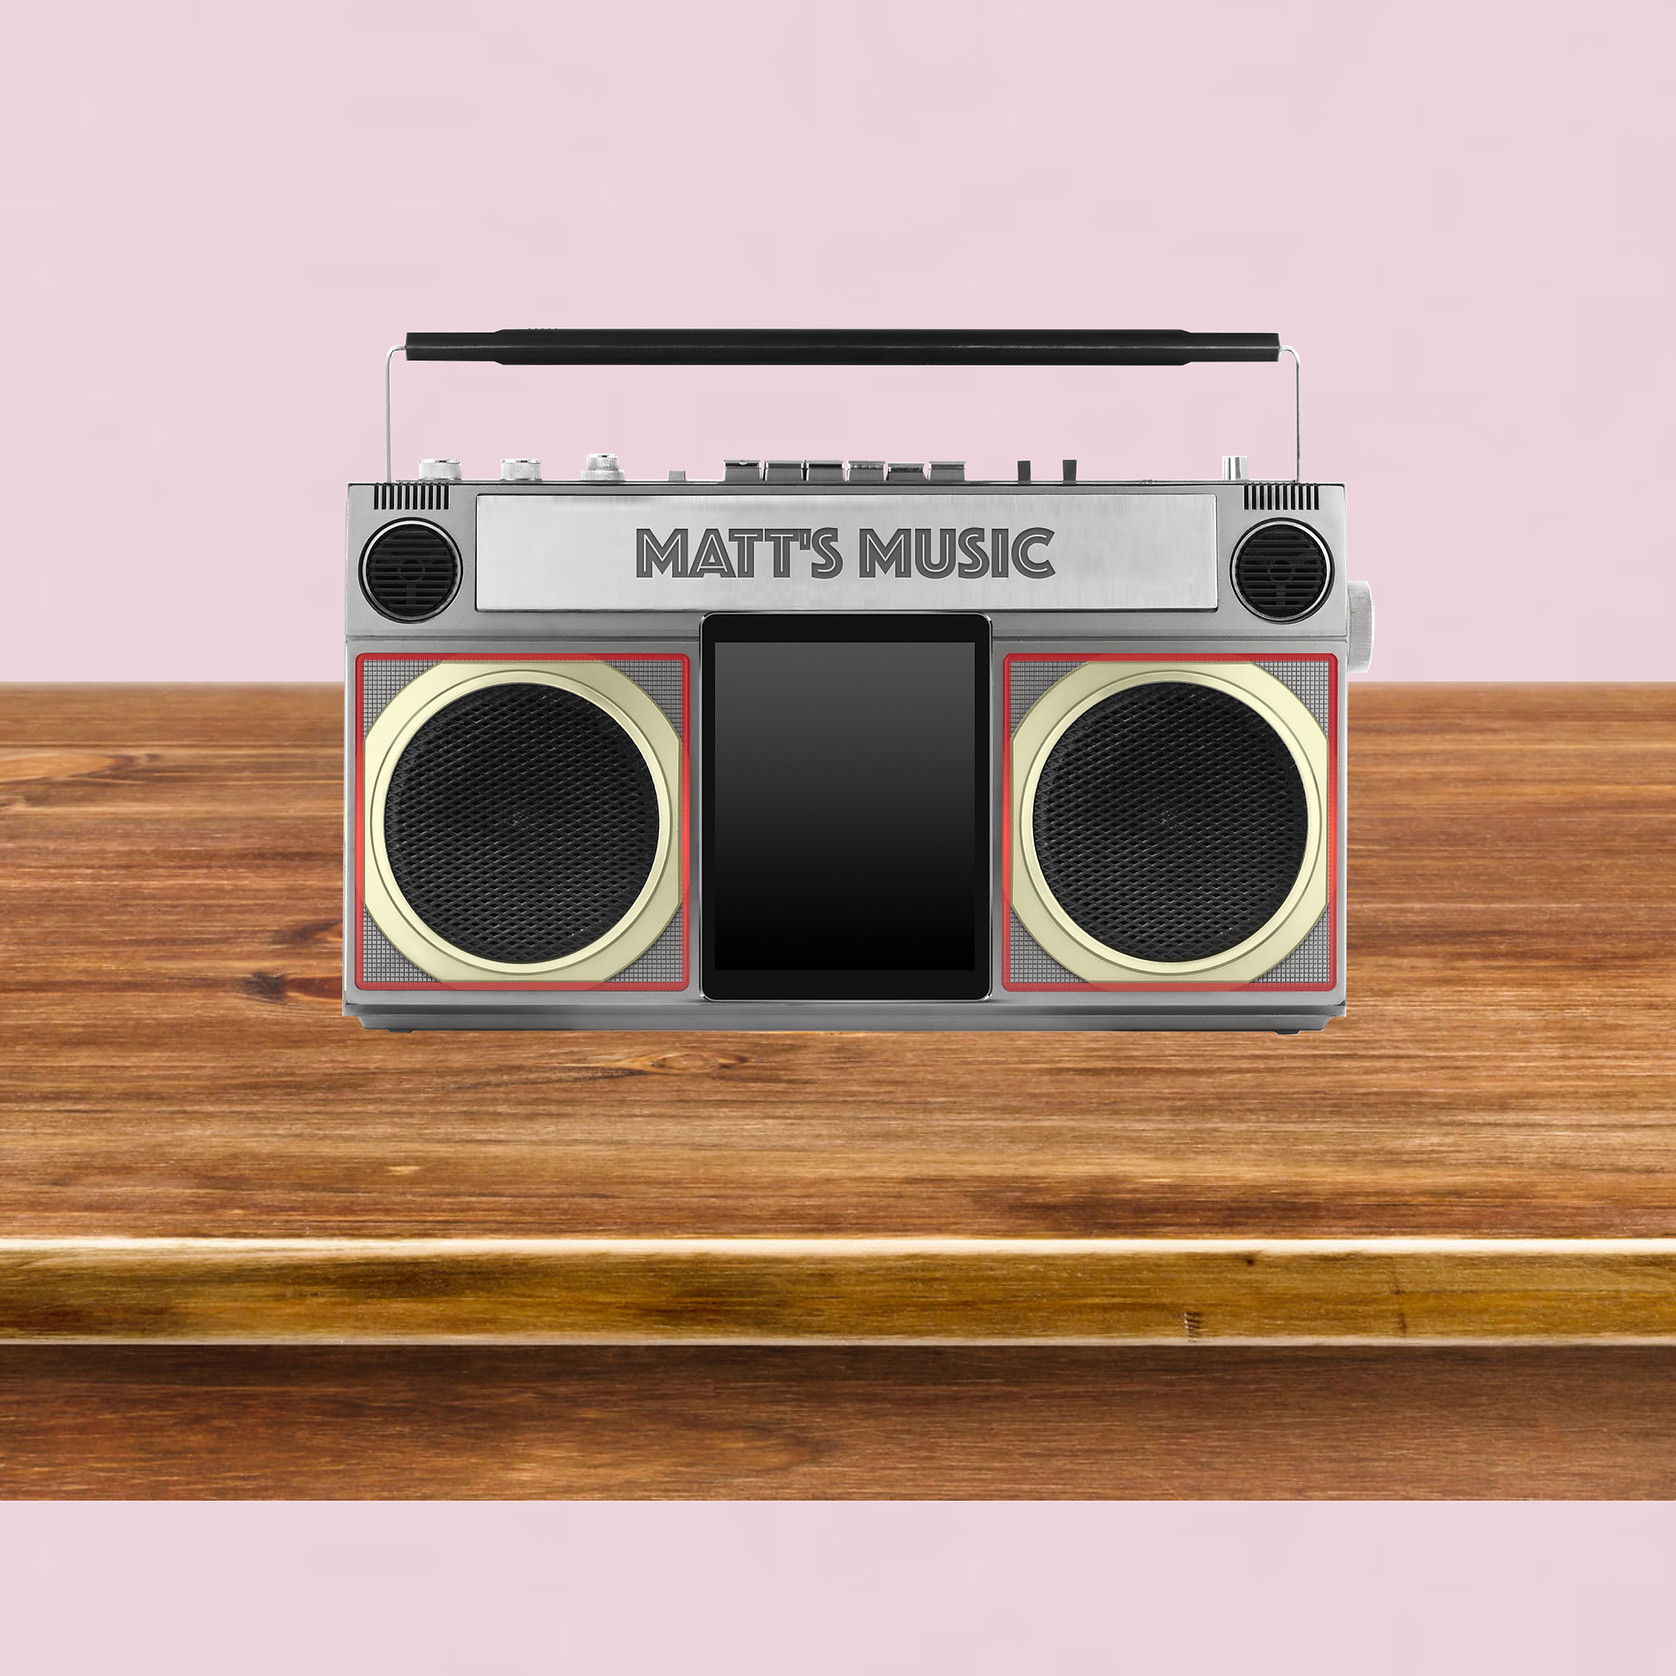 Background image featuring a music player